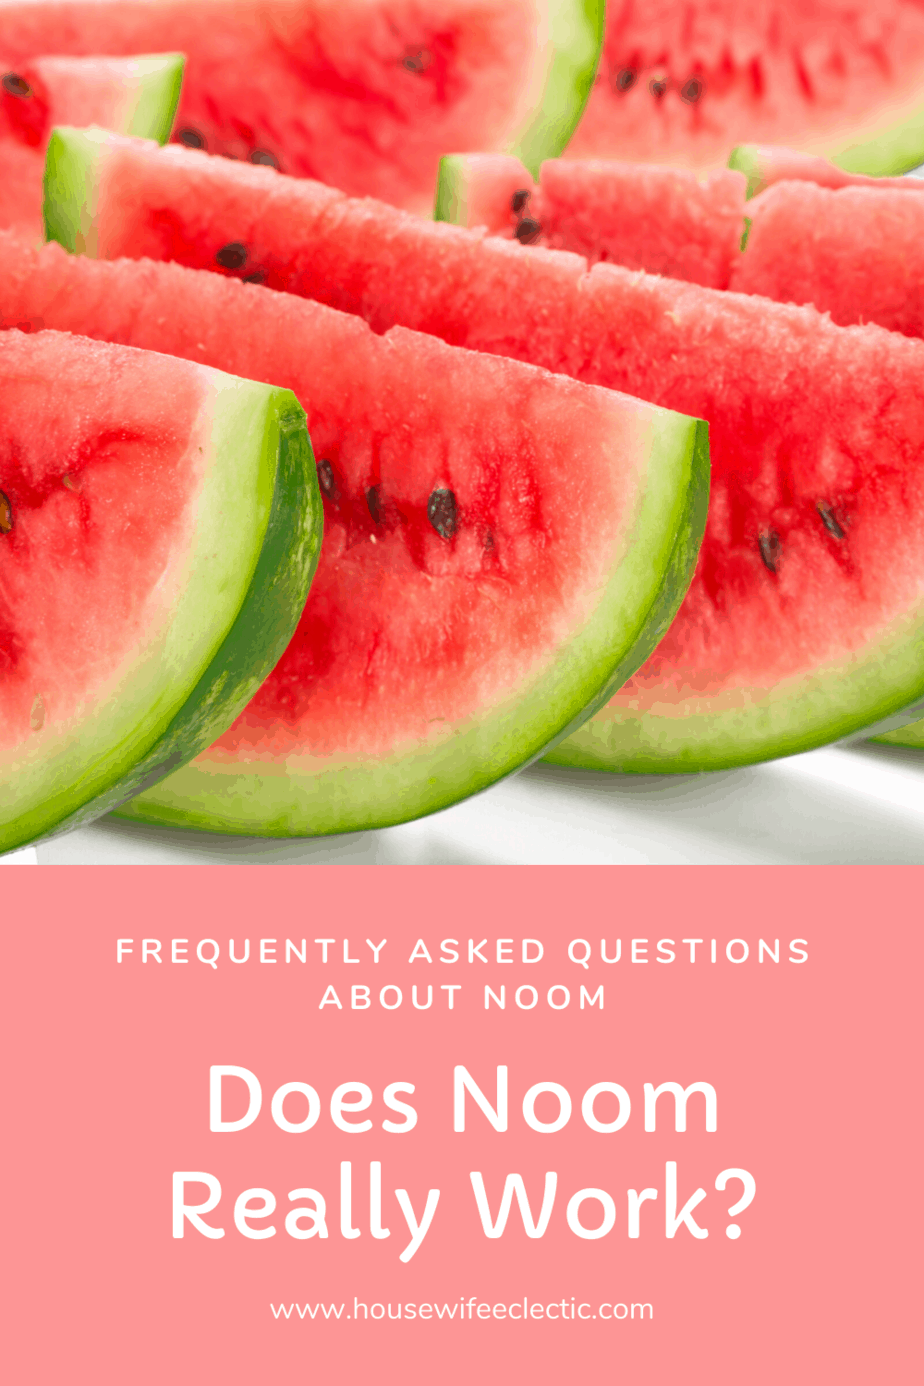 Housewife Eclectic: Does Noom Really Work?